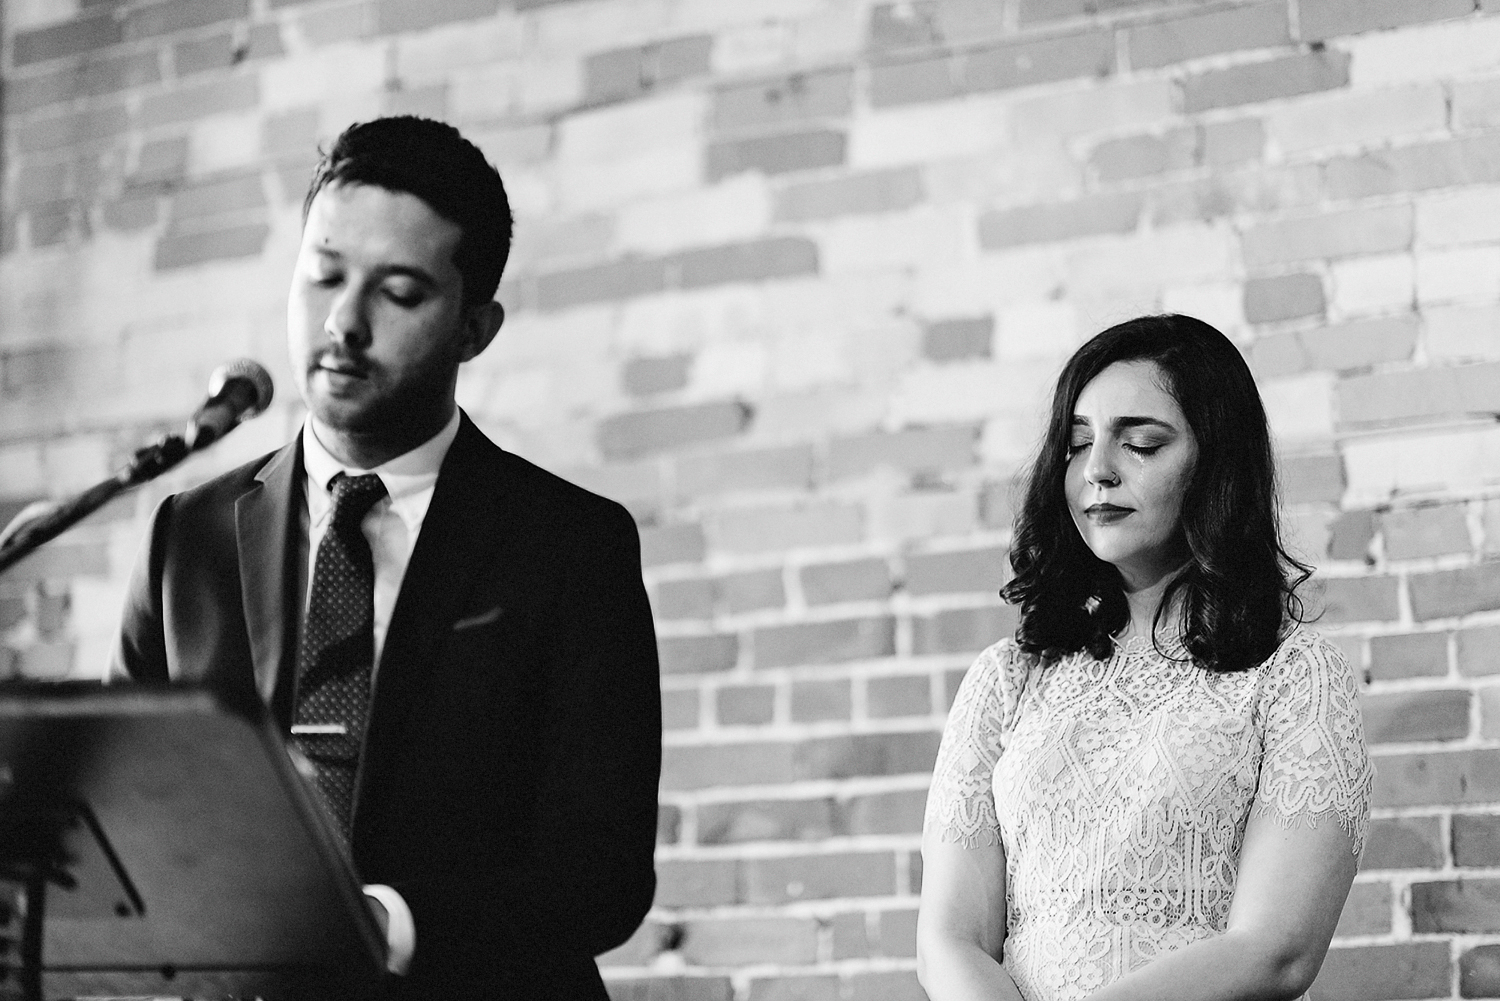 downtown-toronto-wedding-photographer-ryanne-hollies-photography-airship37-distillery-district-wedding-day-modern-minimalist-venues-in-toronto-ceremony-documentary-moments-bride-and-father-walking-down-the-aisle-ice.jpg